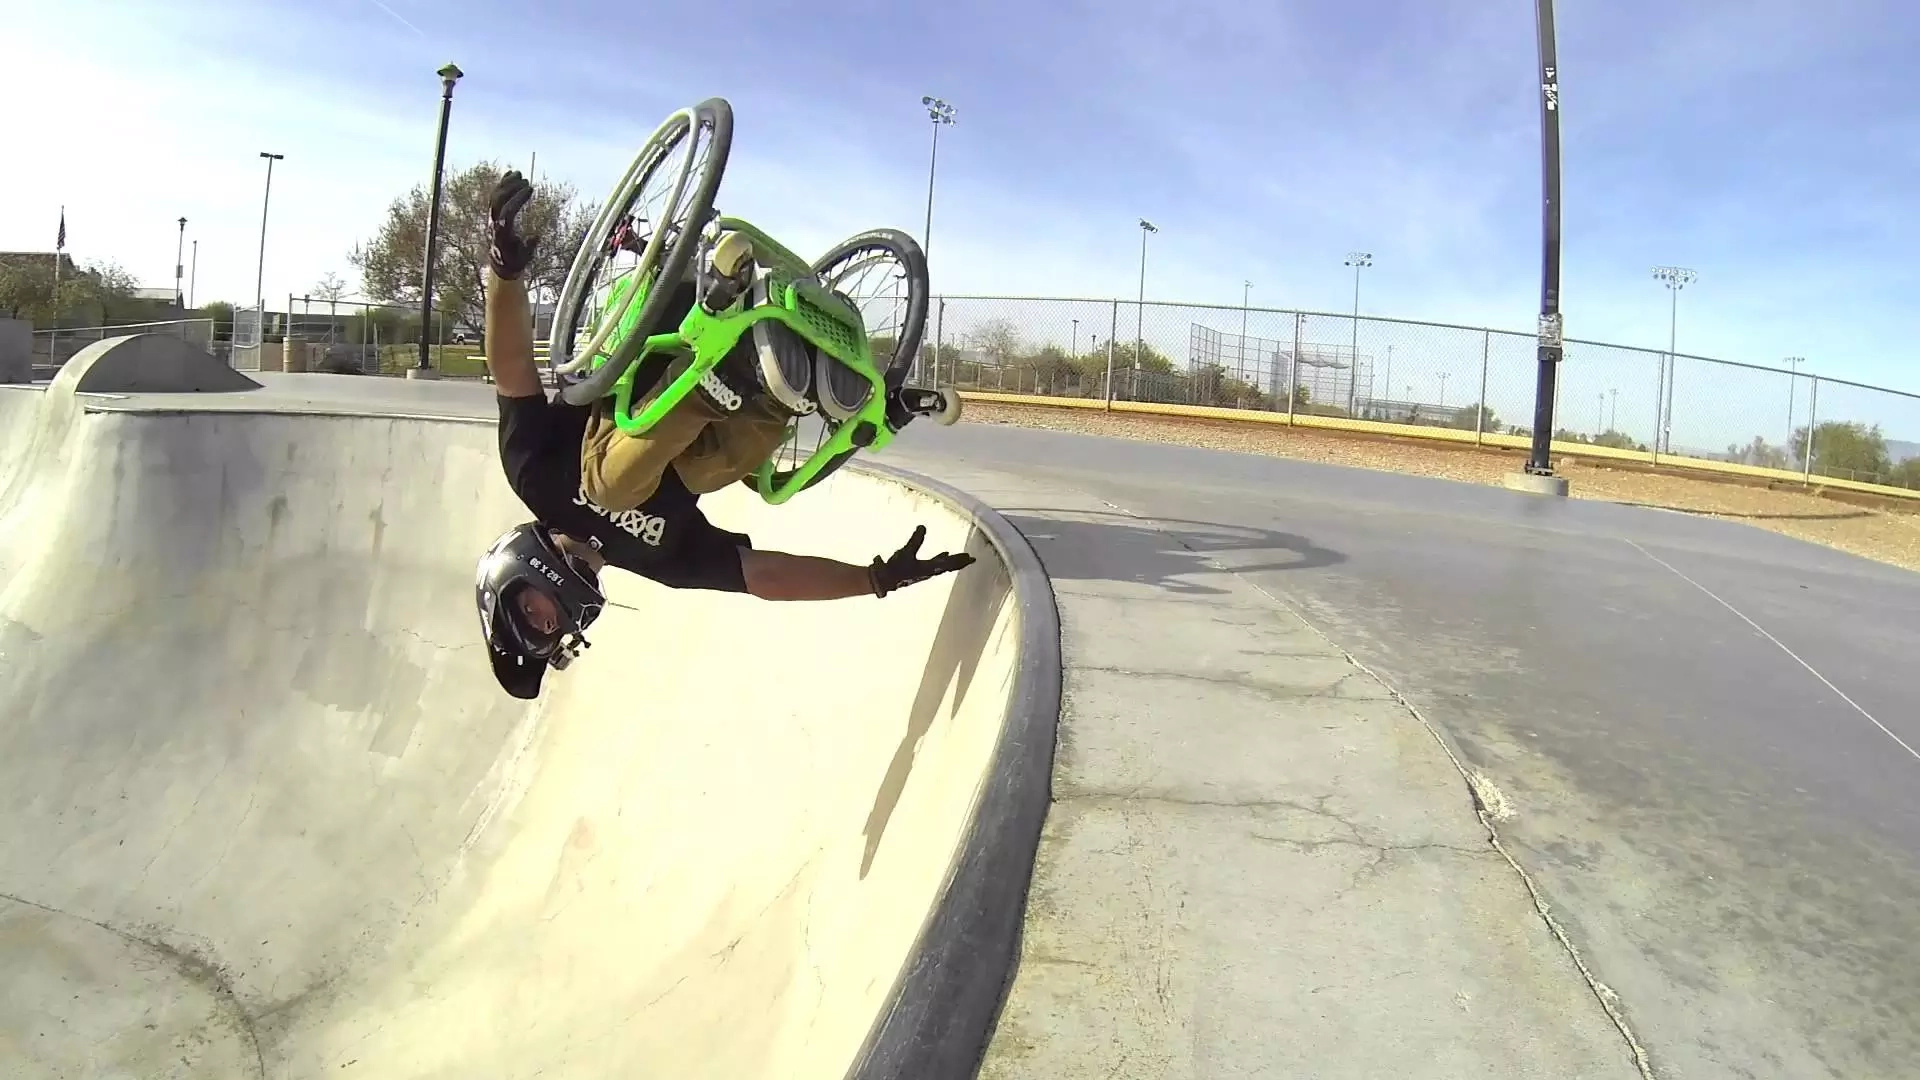 First double backflip in a wheelchair